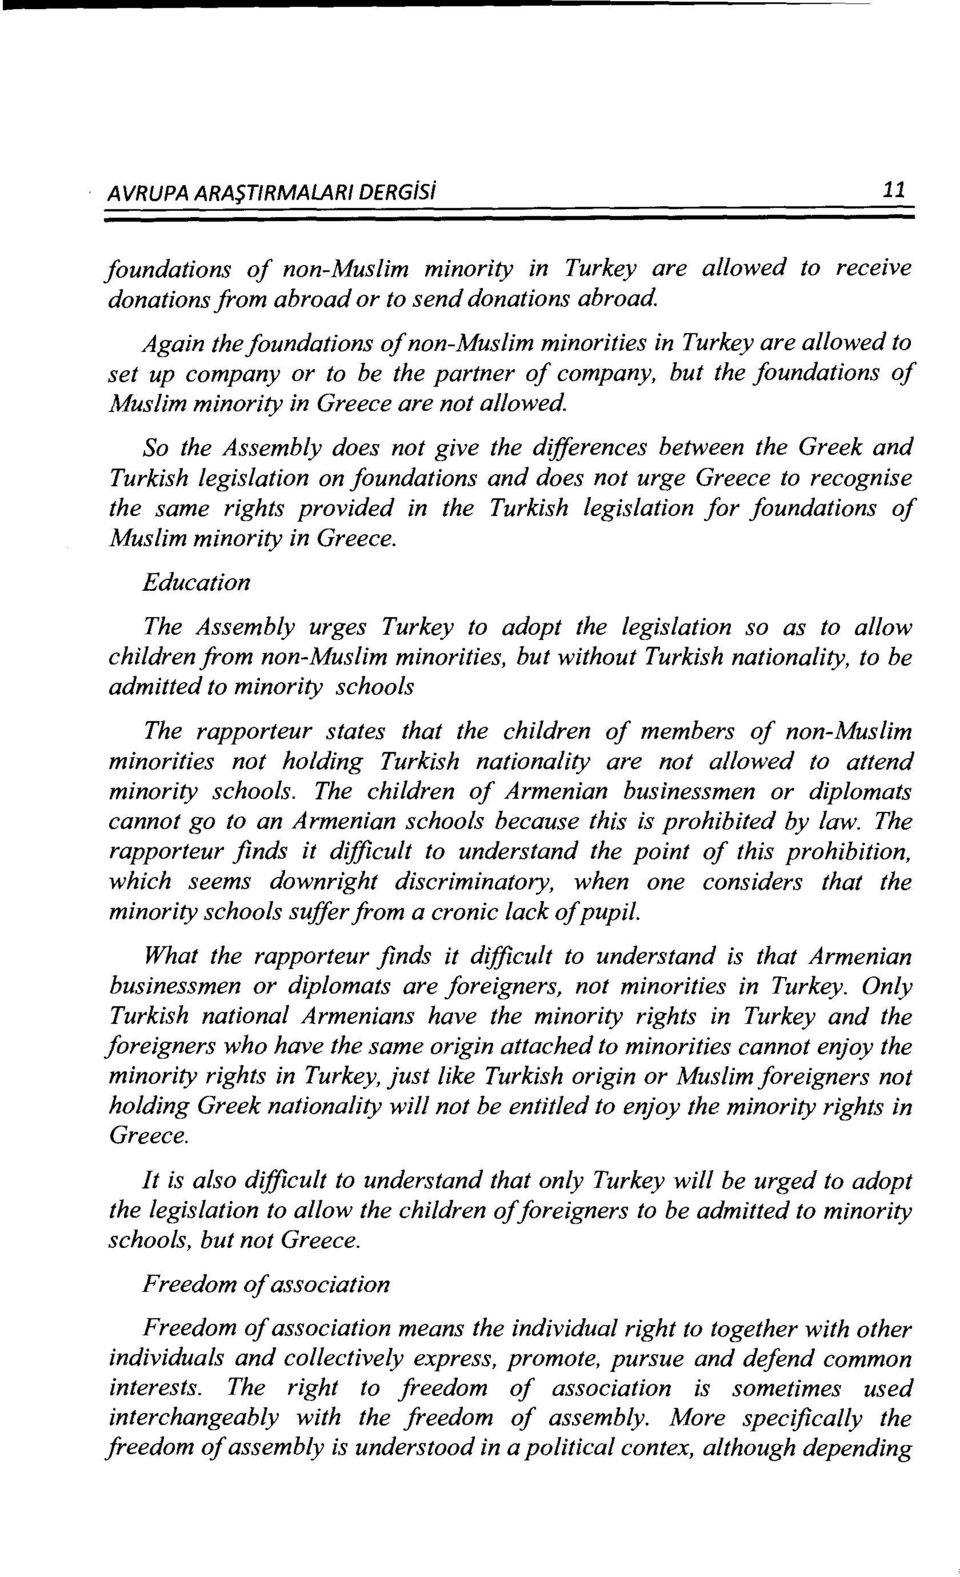 So the Assembly does not give the differences between the Greek and Turkish legislation on foundations and does not urge Greece to recognise the same rights provided in the Turkish legislation for